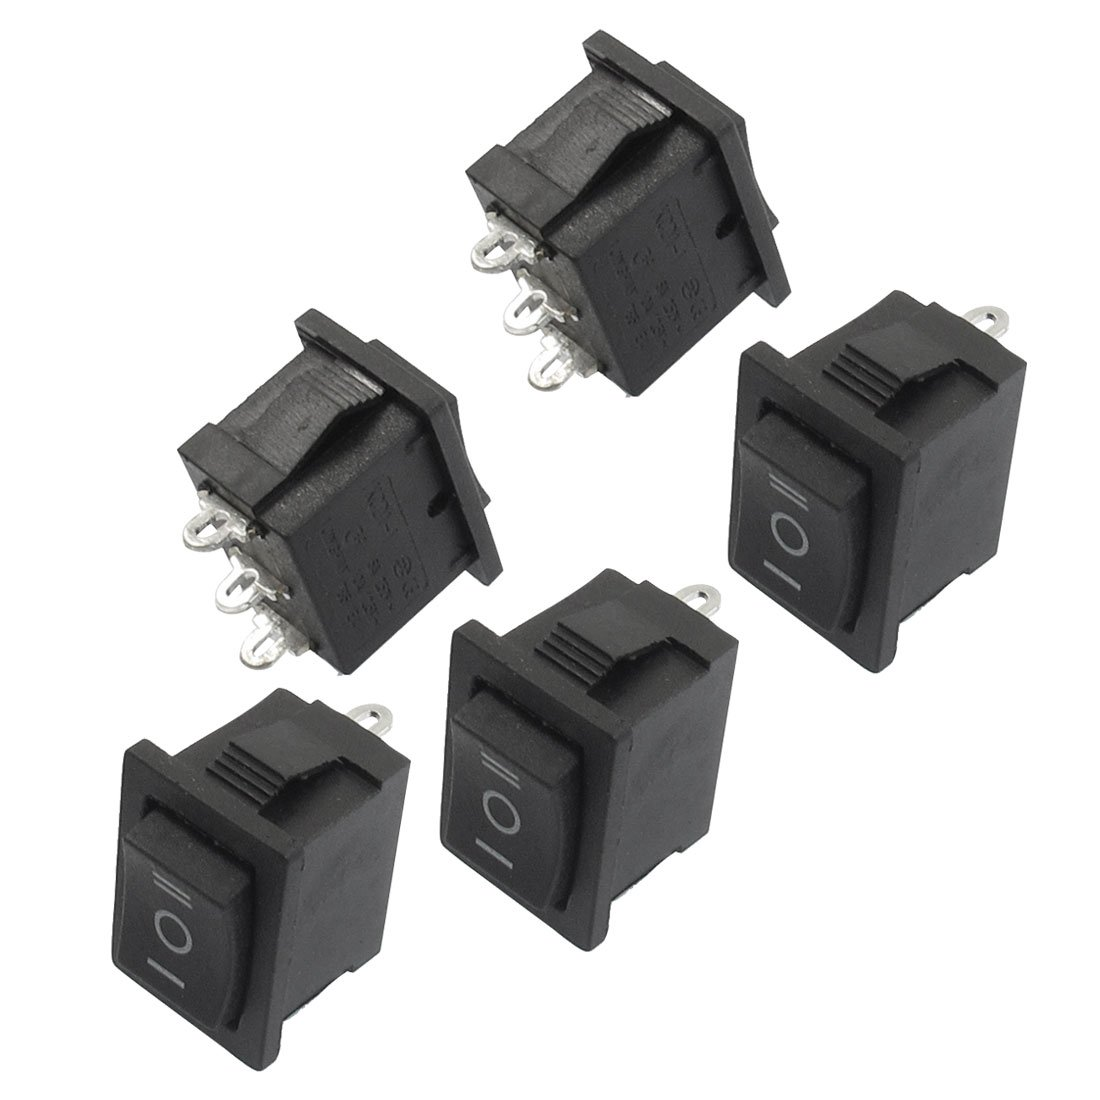 Promotion! 5 pcs SPDT On/Off/On Mini Black 3 Pin Rocker Switch AC 6A/250V 10A/125V wsfs hot sale 10 pcs spdt black red button on on round rocker switch ac 6a 125v 3a 250v